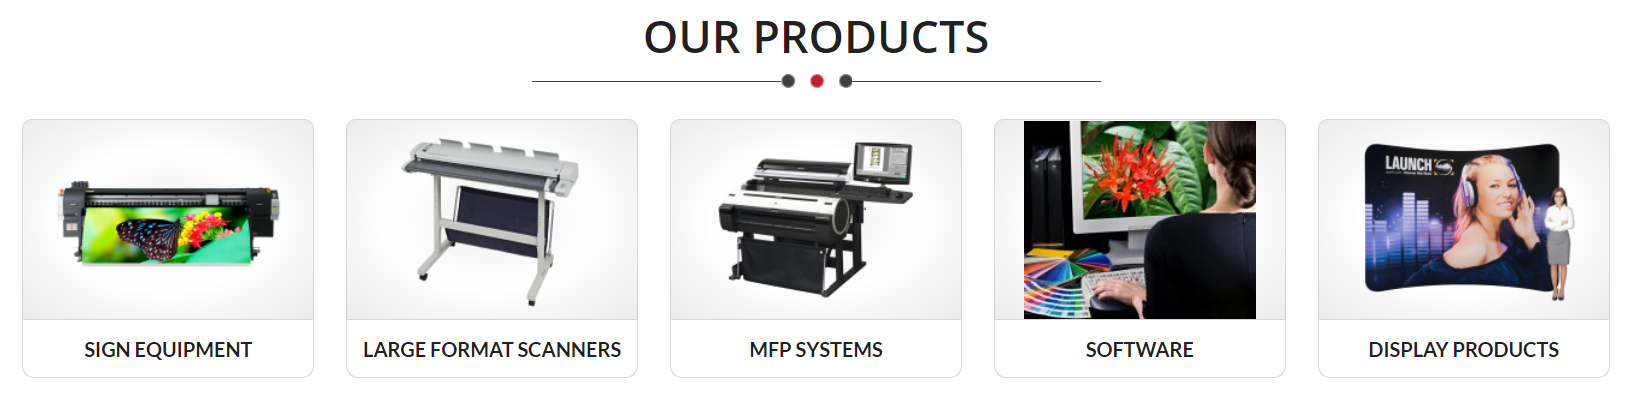 Paradigm Large Format Scanners Printers & Sign Equipment